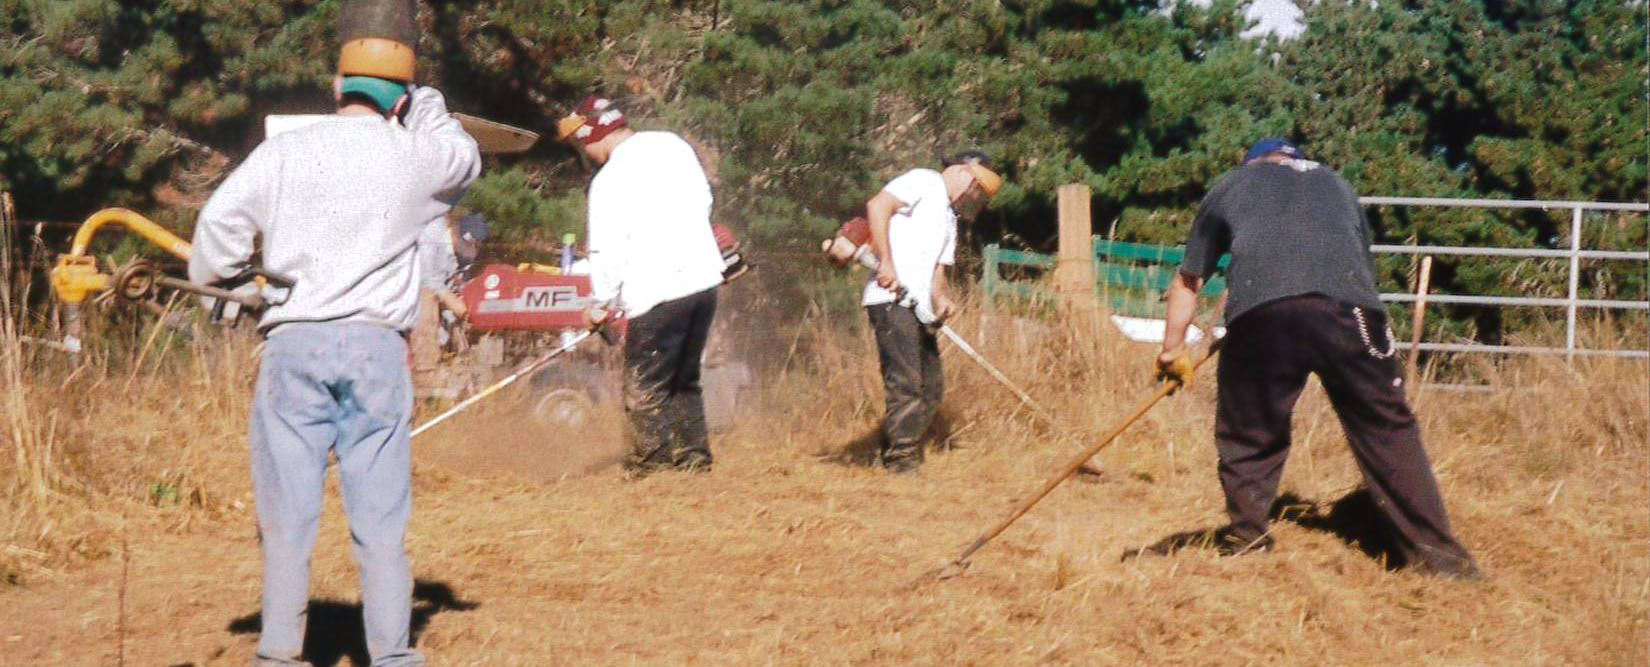 SWAP participants clearing brush